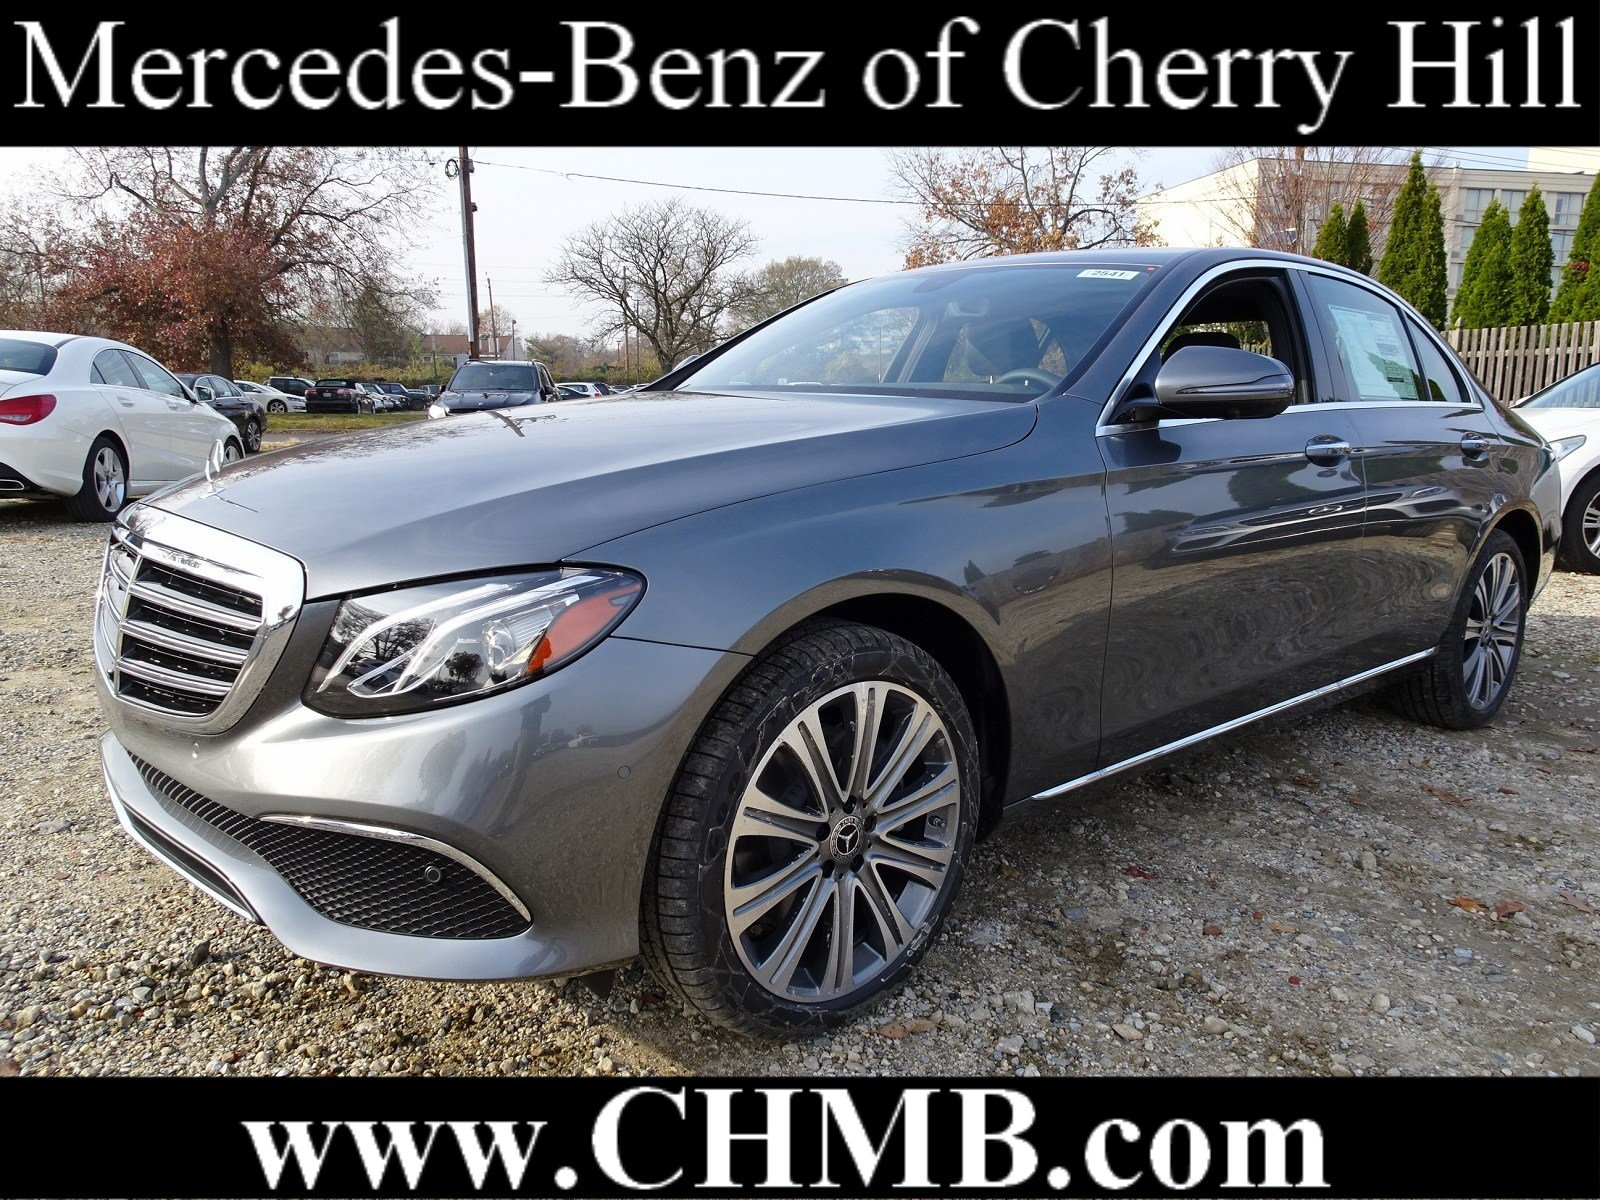 New 2019 Mercedes Benz E Class E 300 Luxury SEDAN in Cherry Hill